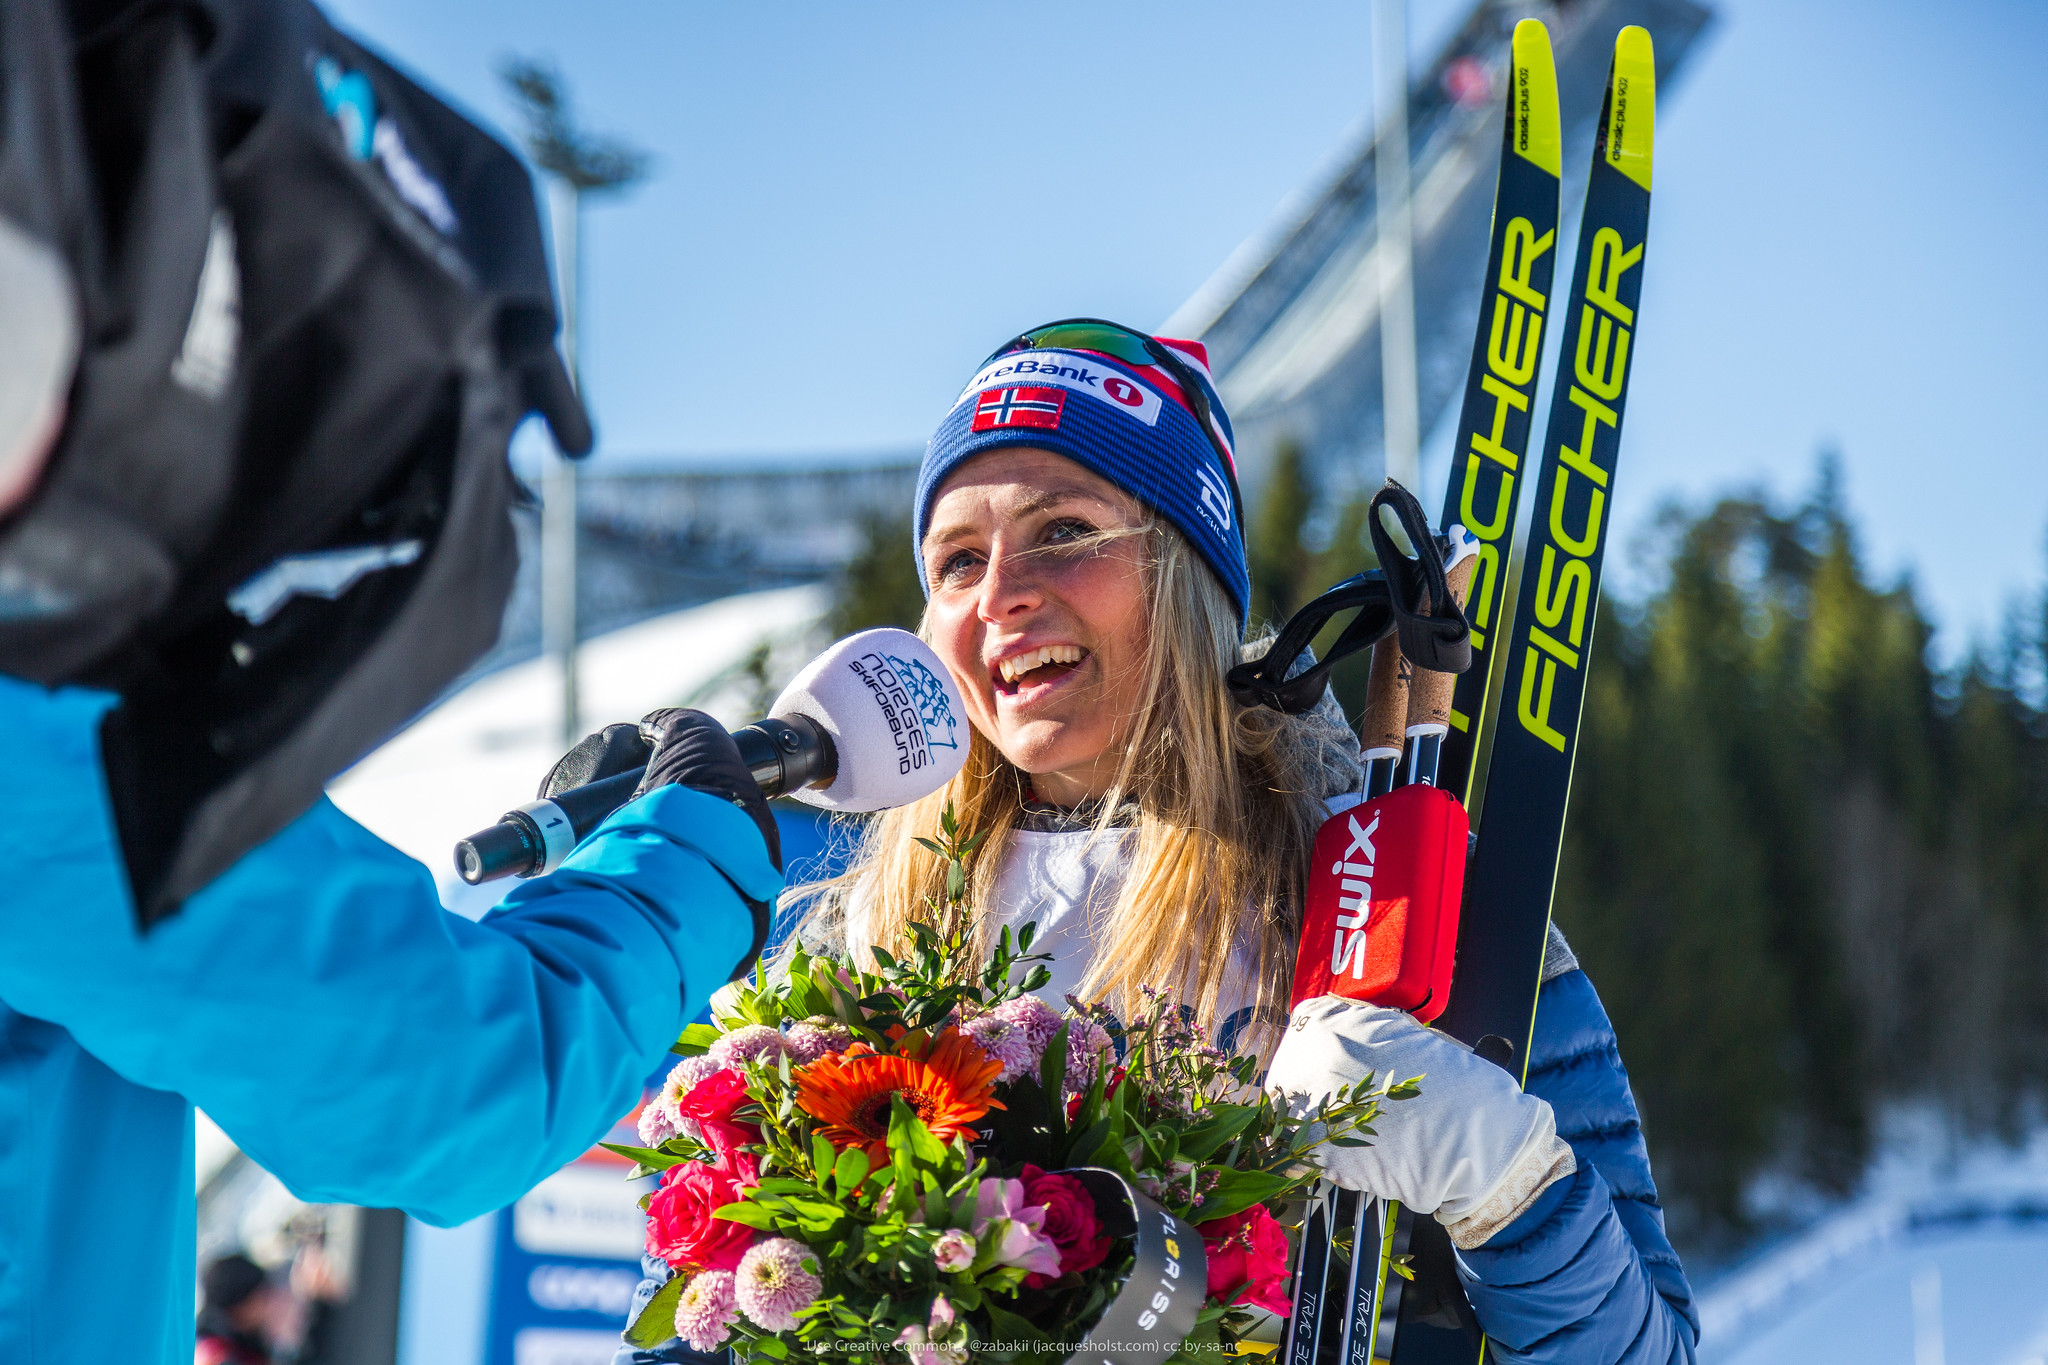 Johaug-2-Holst-1